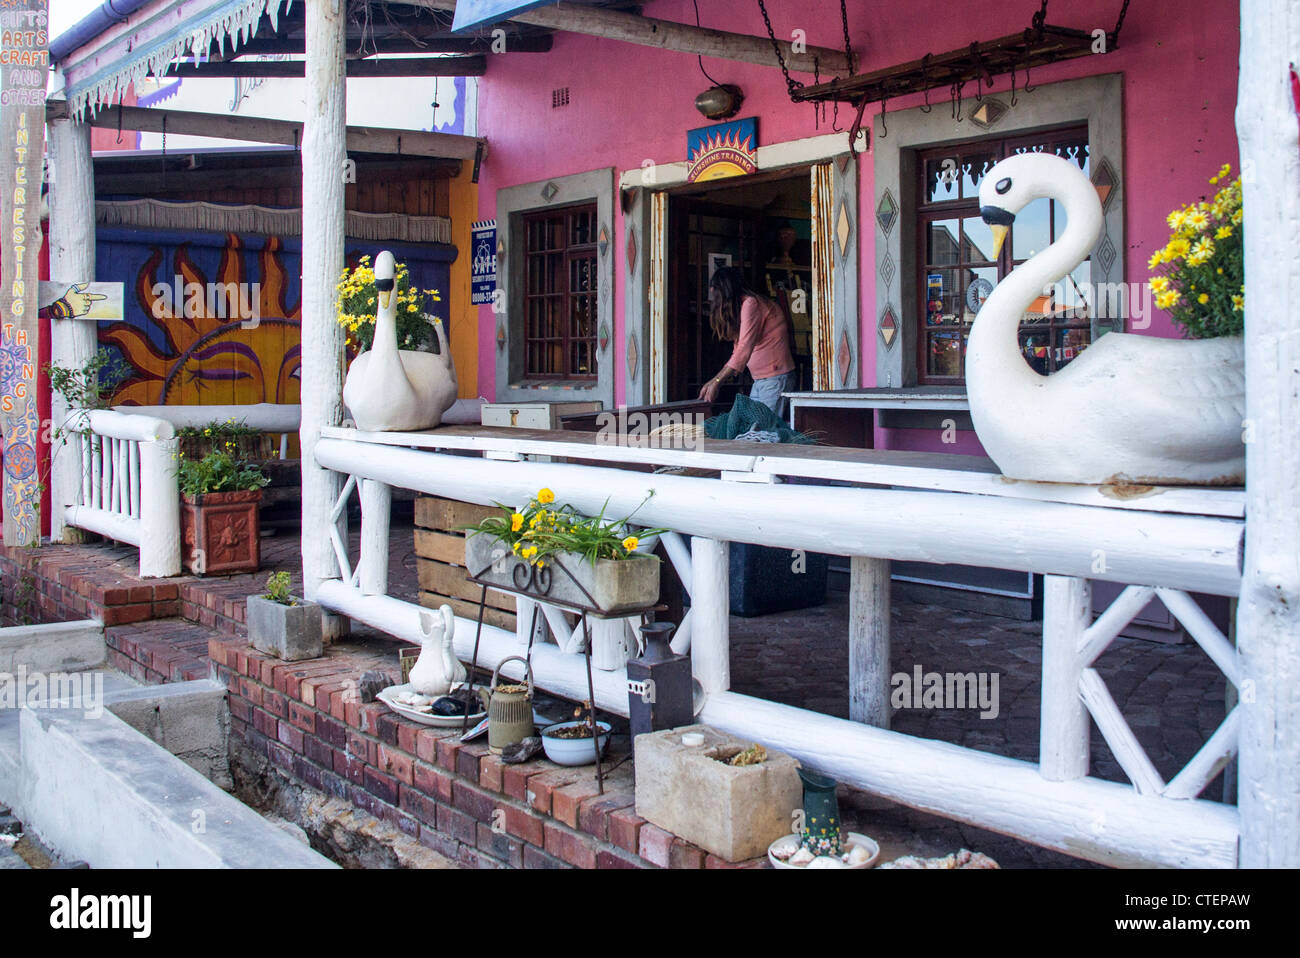 Swans guard the front of trendy shop - Sunshine Trading, Kleinmond, Western Cape, South Africa - Stock Image